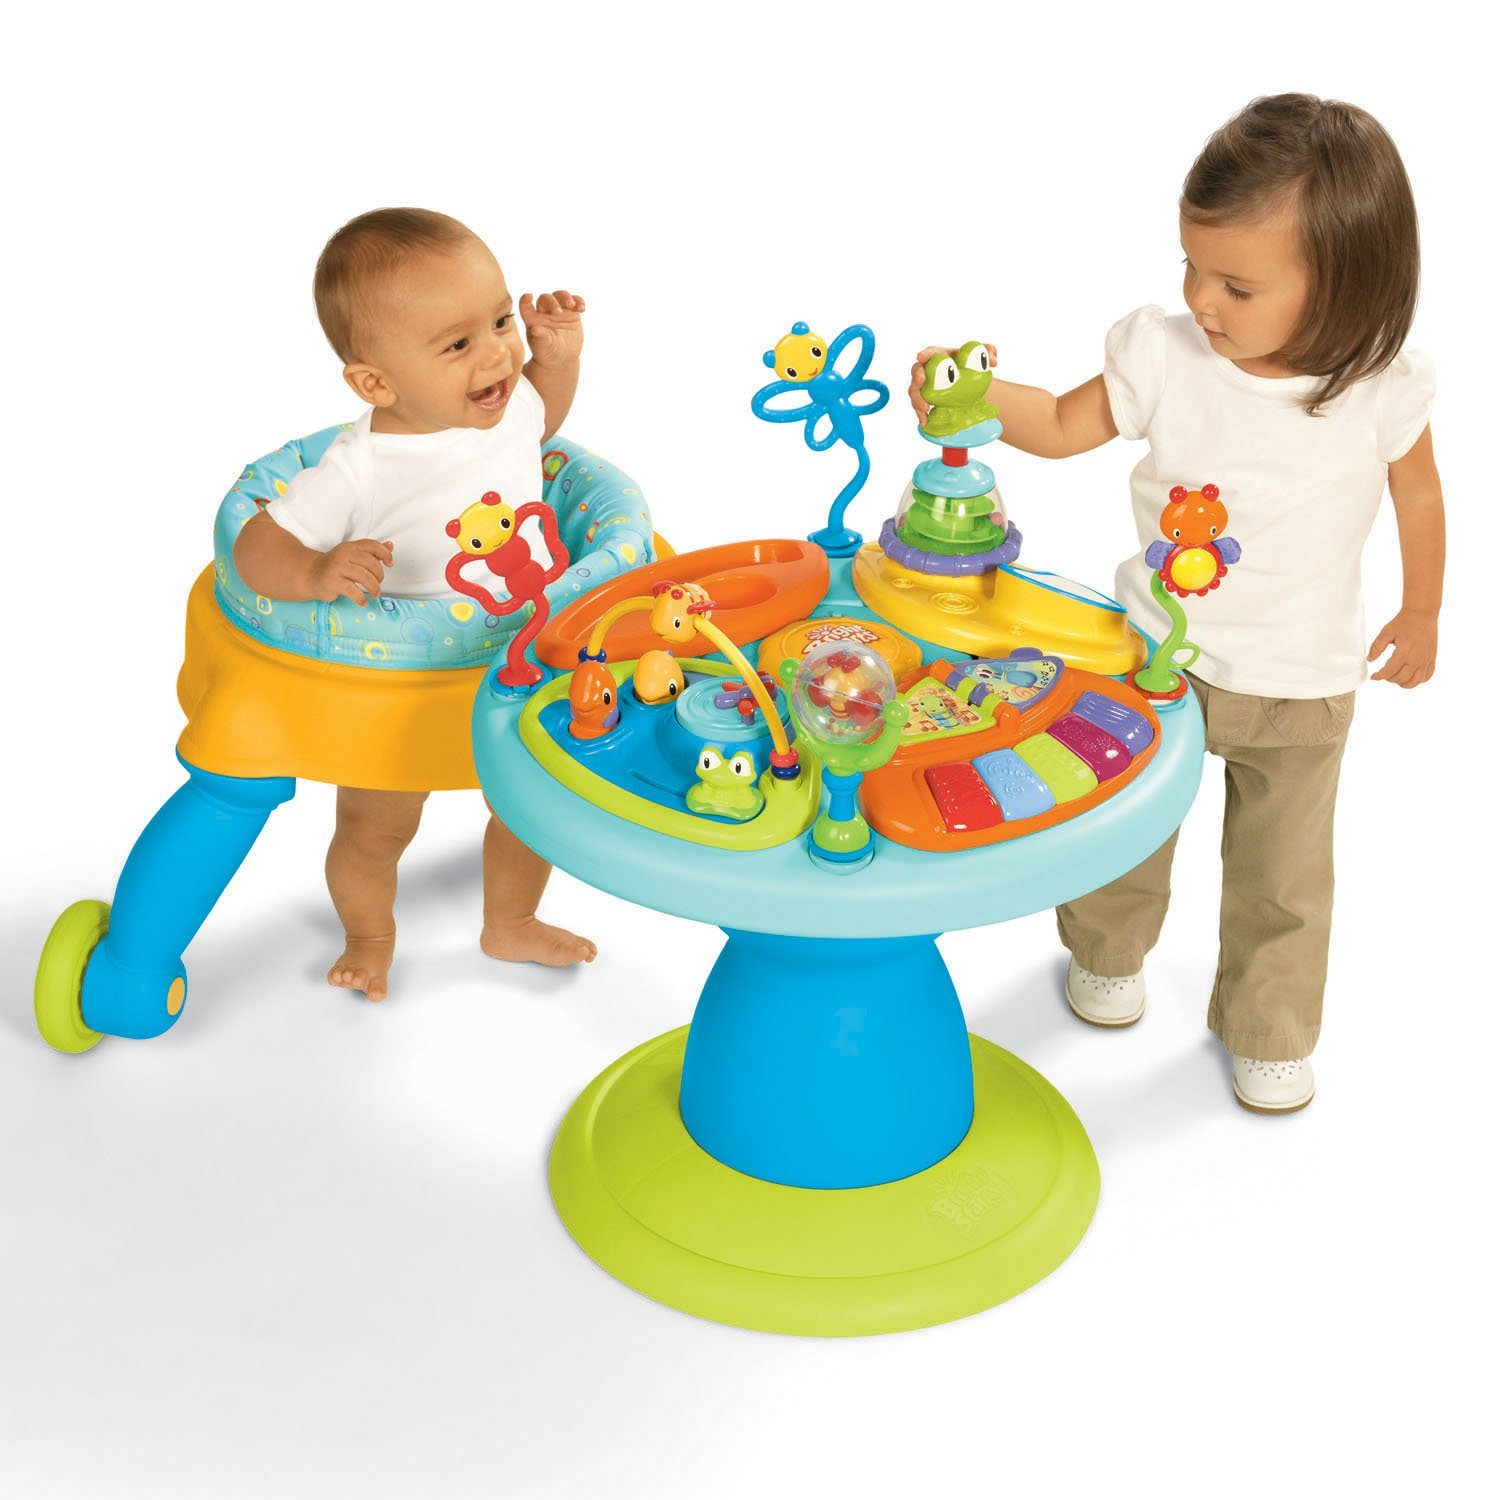 how to change exersaucer to activity table